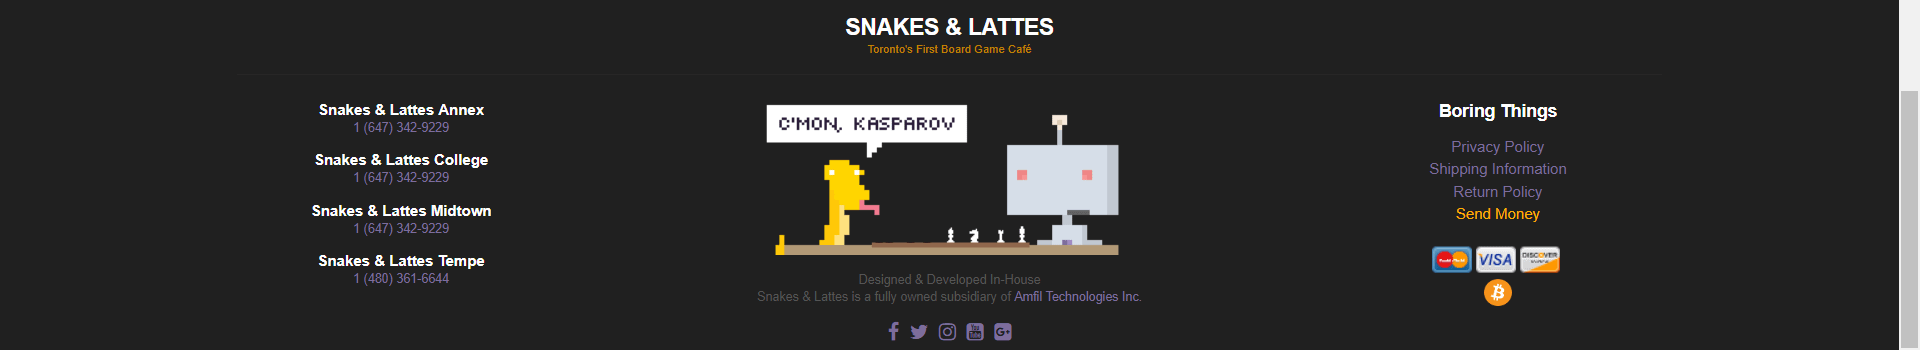 Snakes and Lattes displaying its various locations